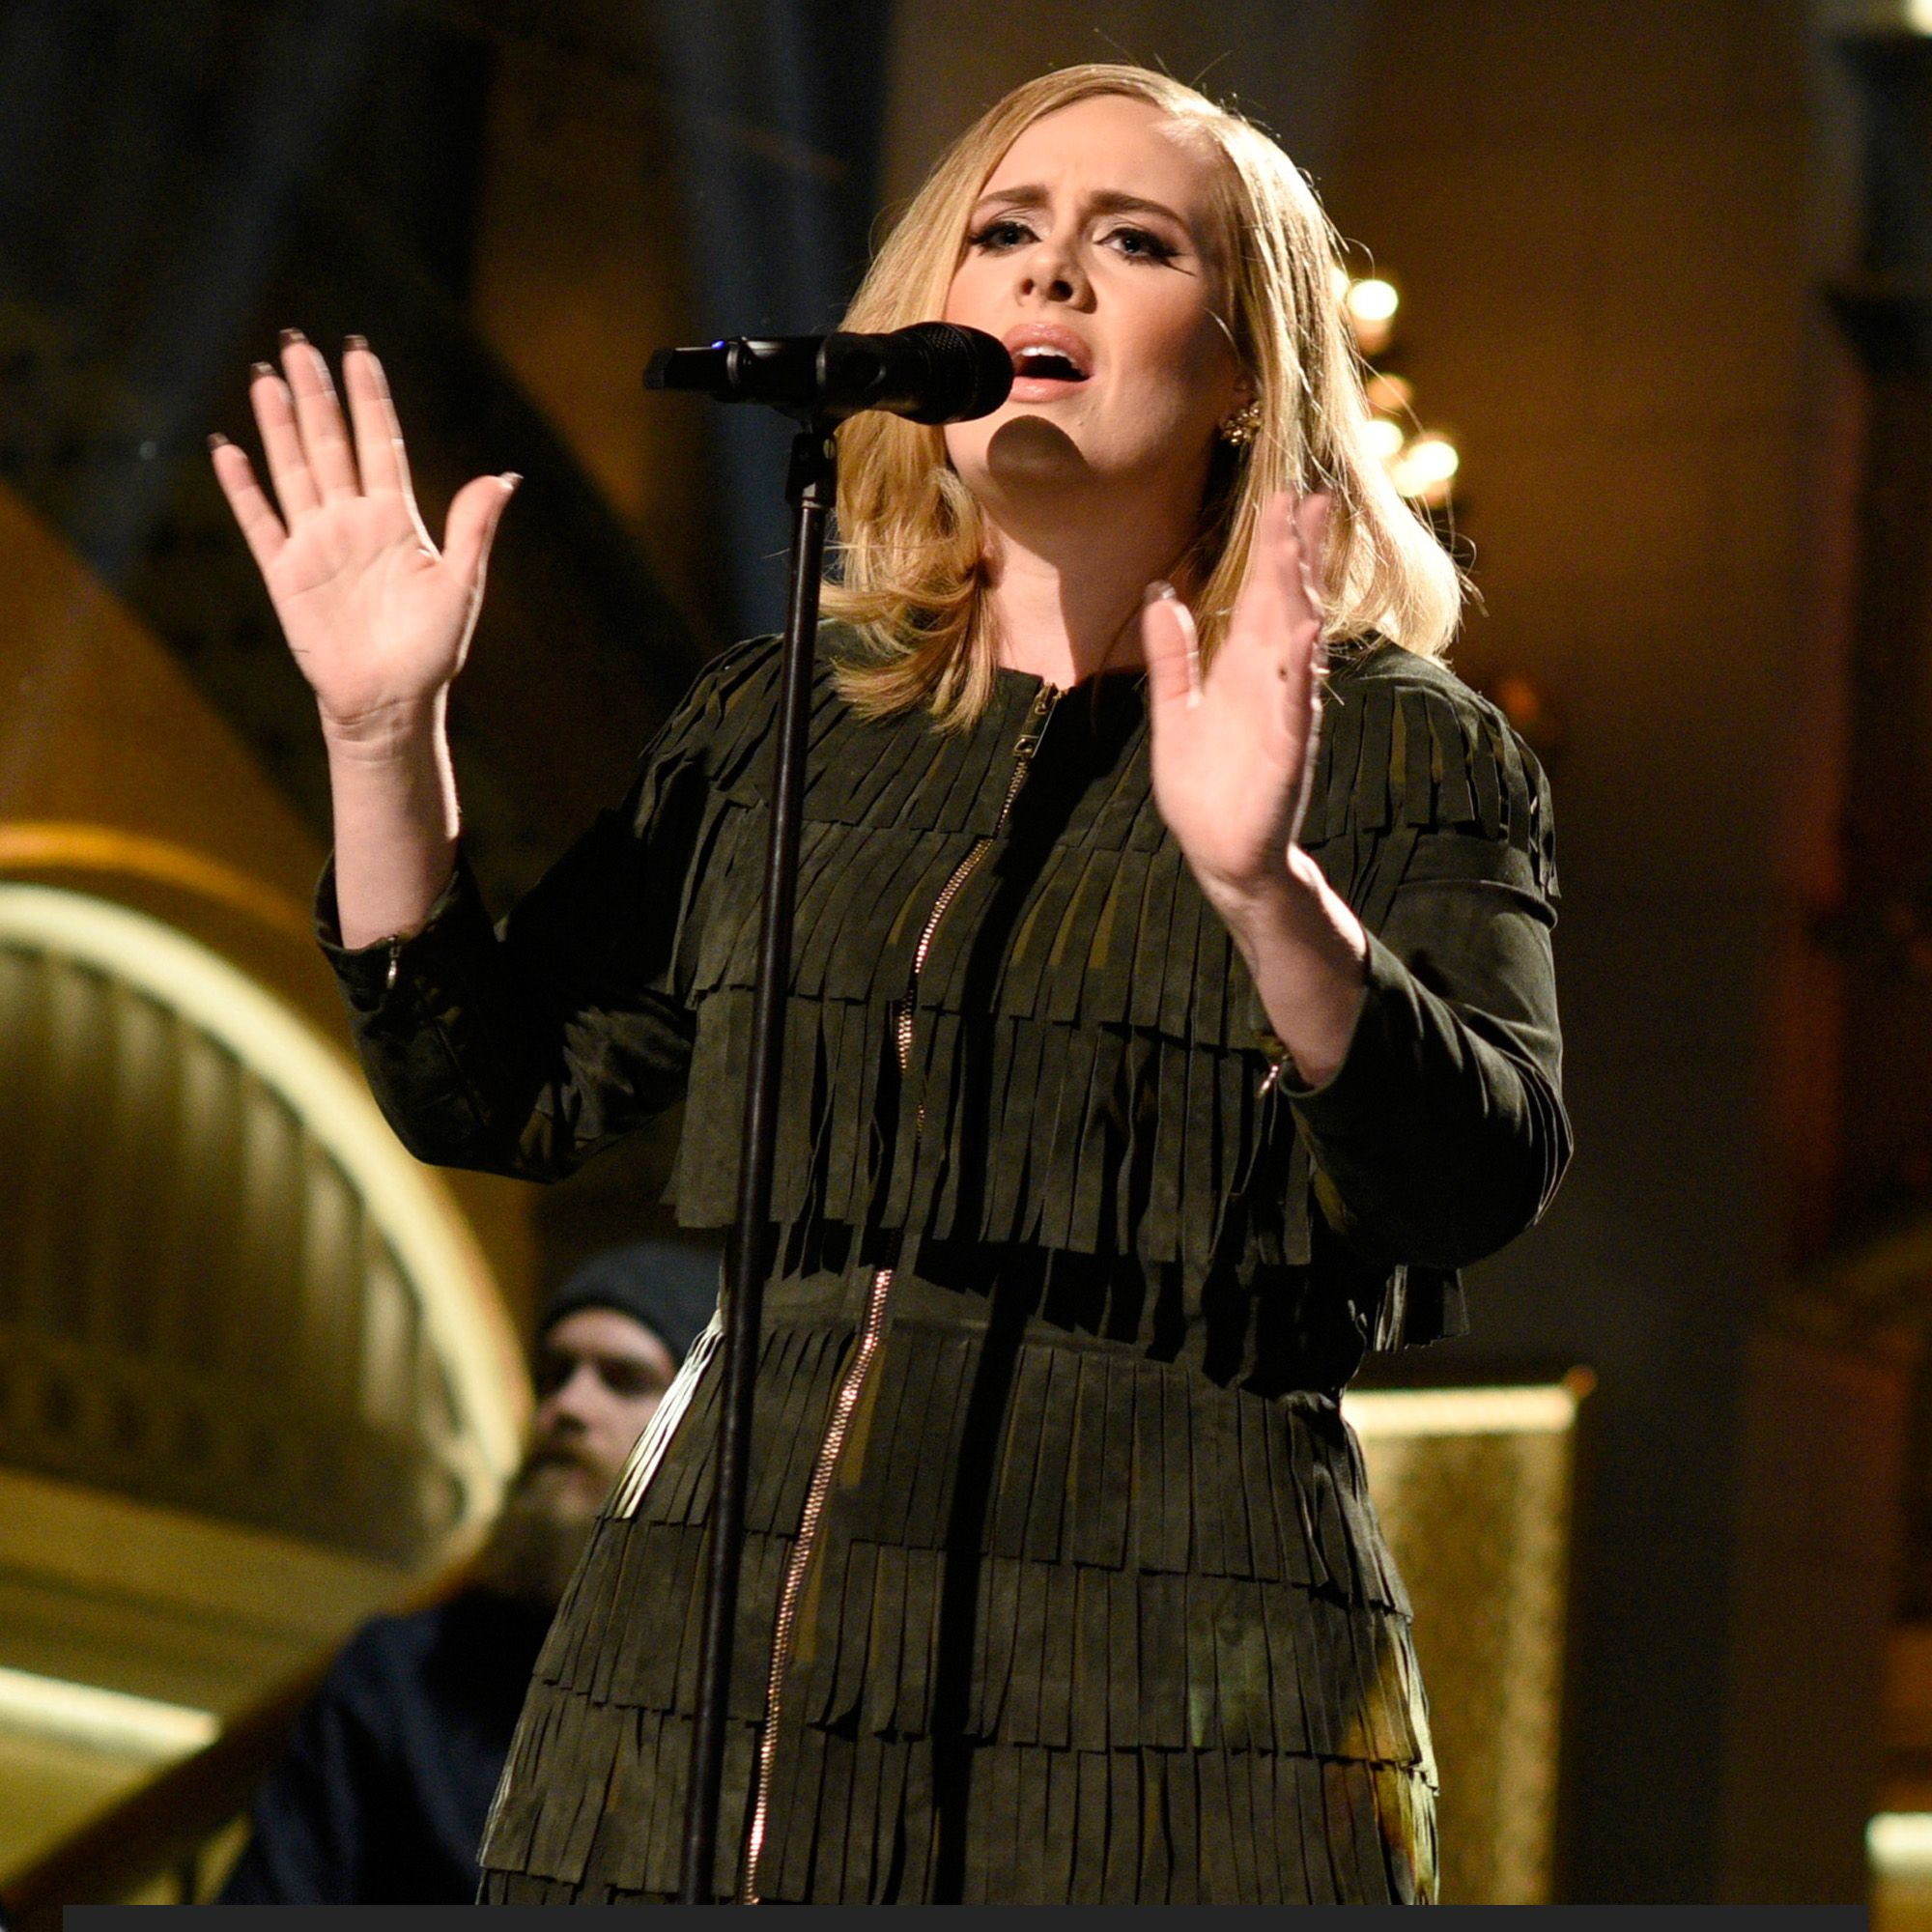 "<p><a href=""http://www.nytimes.com/2015/11/15/arts/music/adele-25-album-interview.html"" target=""_blank""><em>New York Times</em></a>, November 2015</p>"